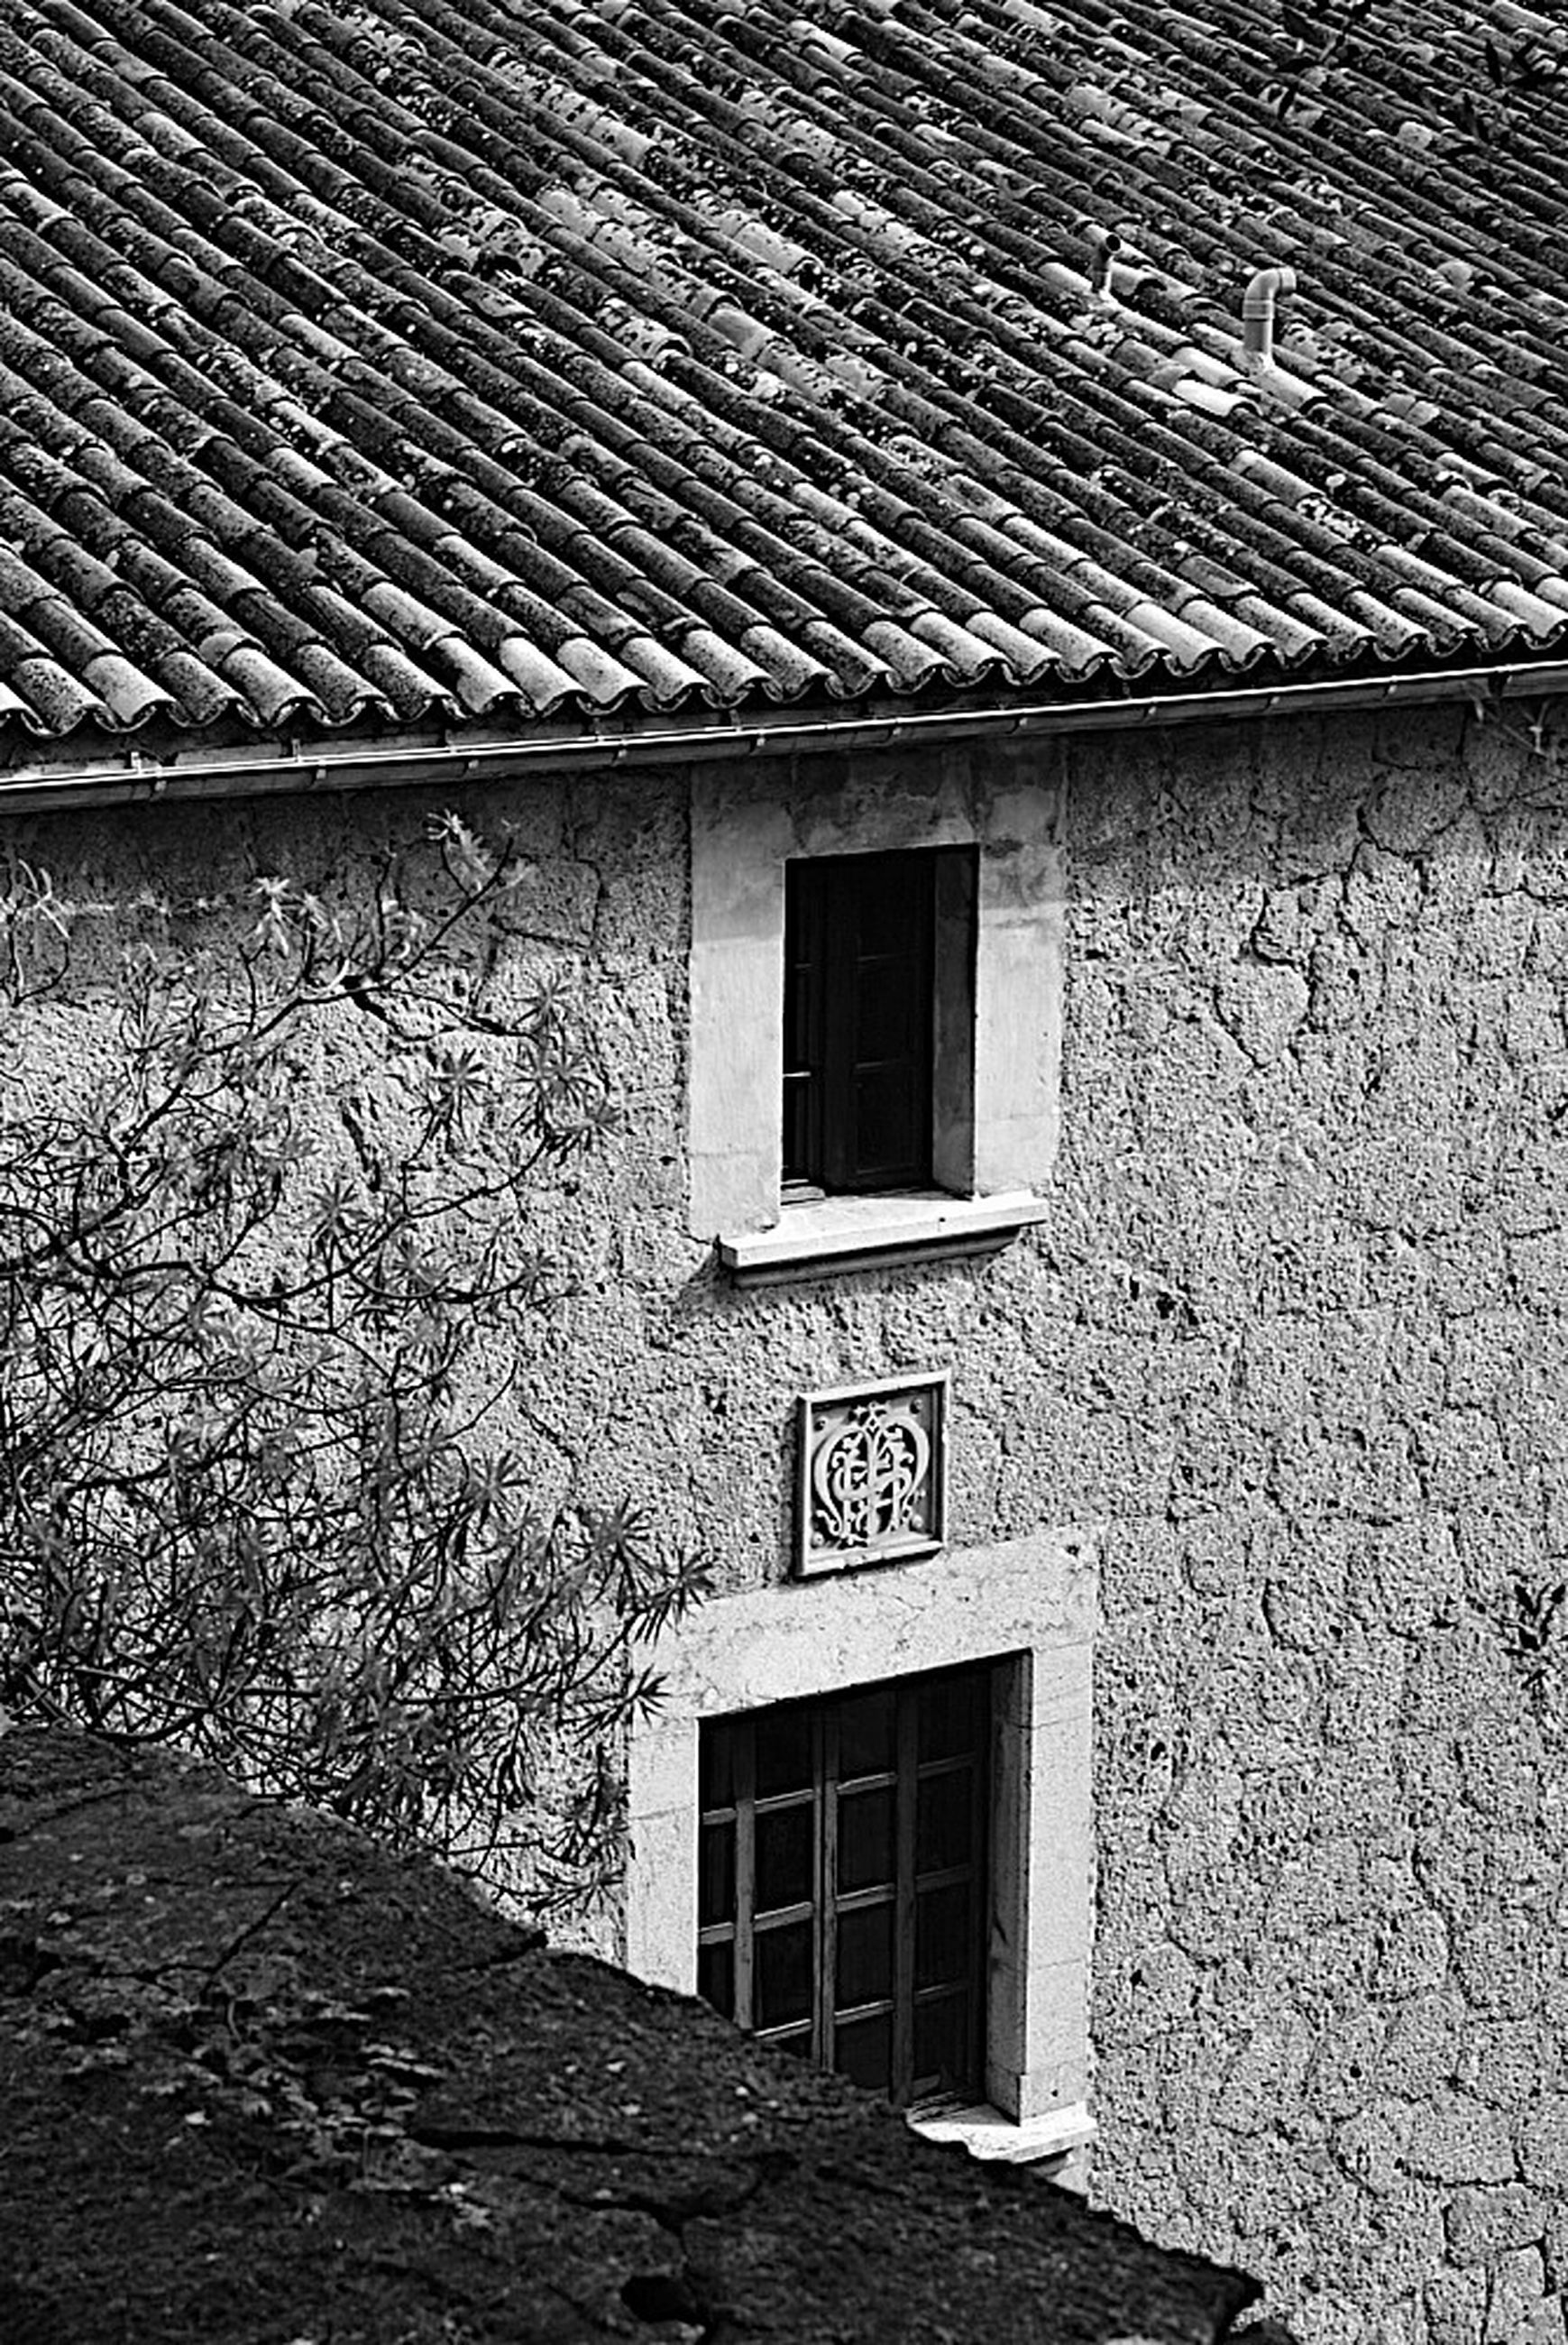 architecture, built structure, building exterior, window, house, residential structure, residential building, brick wall, building, day, wall - building feature, wall, no people, outdoors, old, sunlight, stone wall, door, low angle view, roof